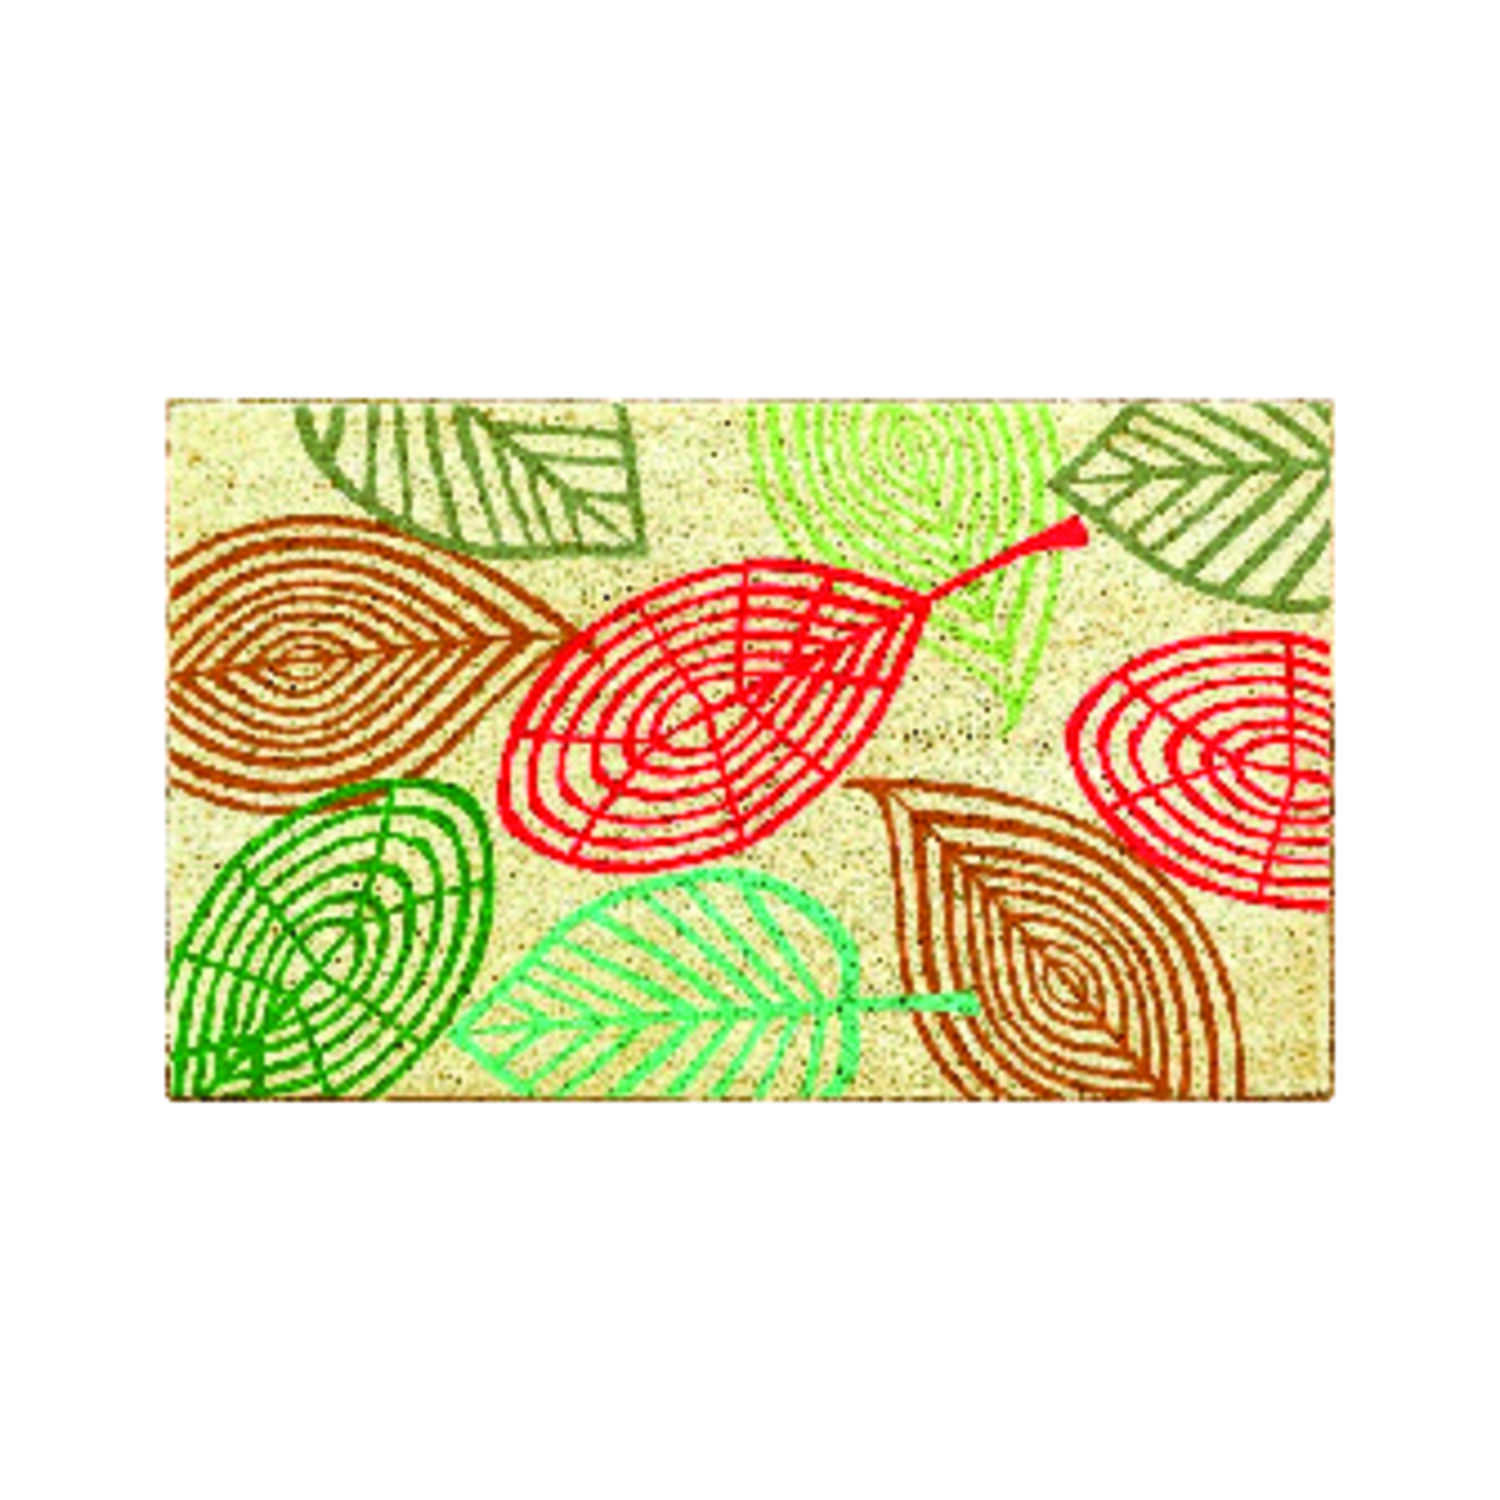 J&M Home Fashions  Multicolor  Coir  Nonslip Floor Mat  30 in. L x 18 in. W